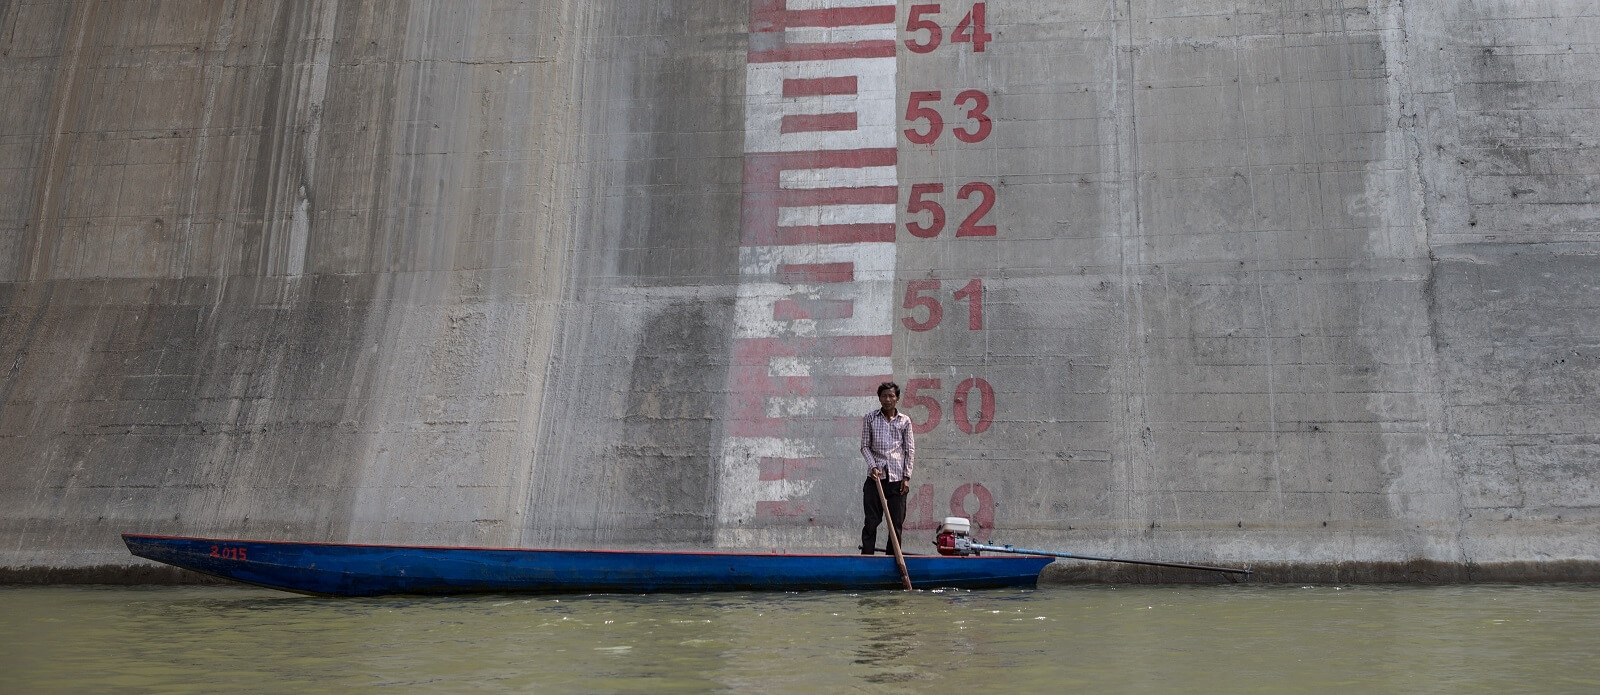 Sesan 2 dam in Stung Treng, Cambodia (Photo: Jason South via Getty)